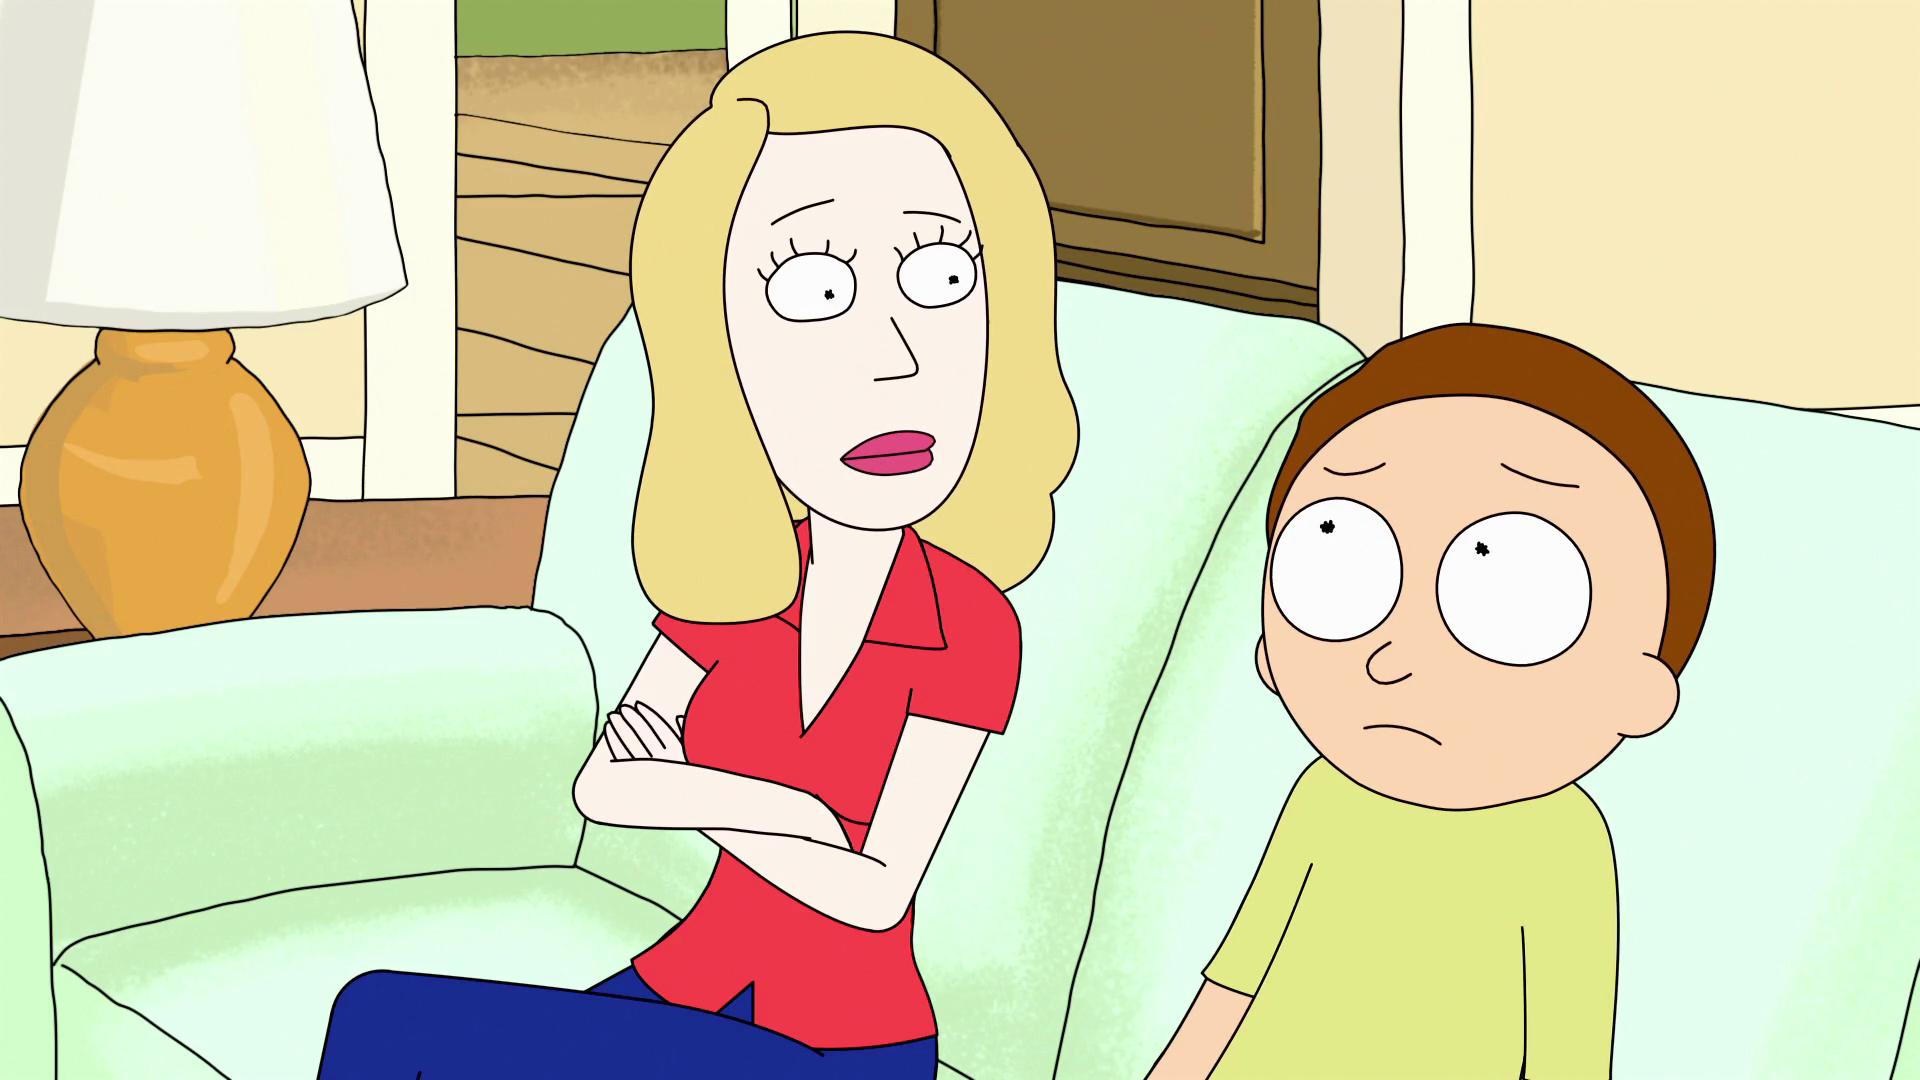 From naked and morty beth rick